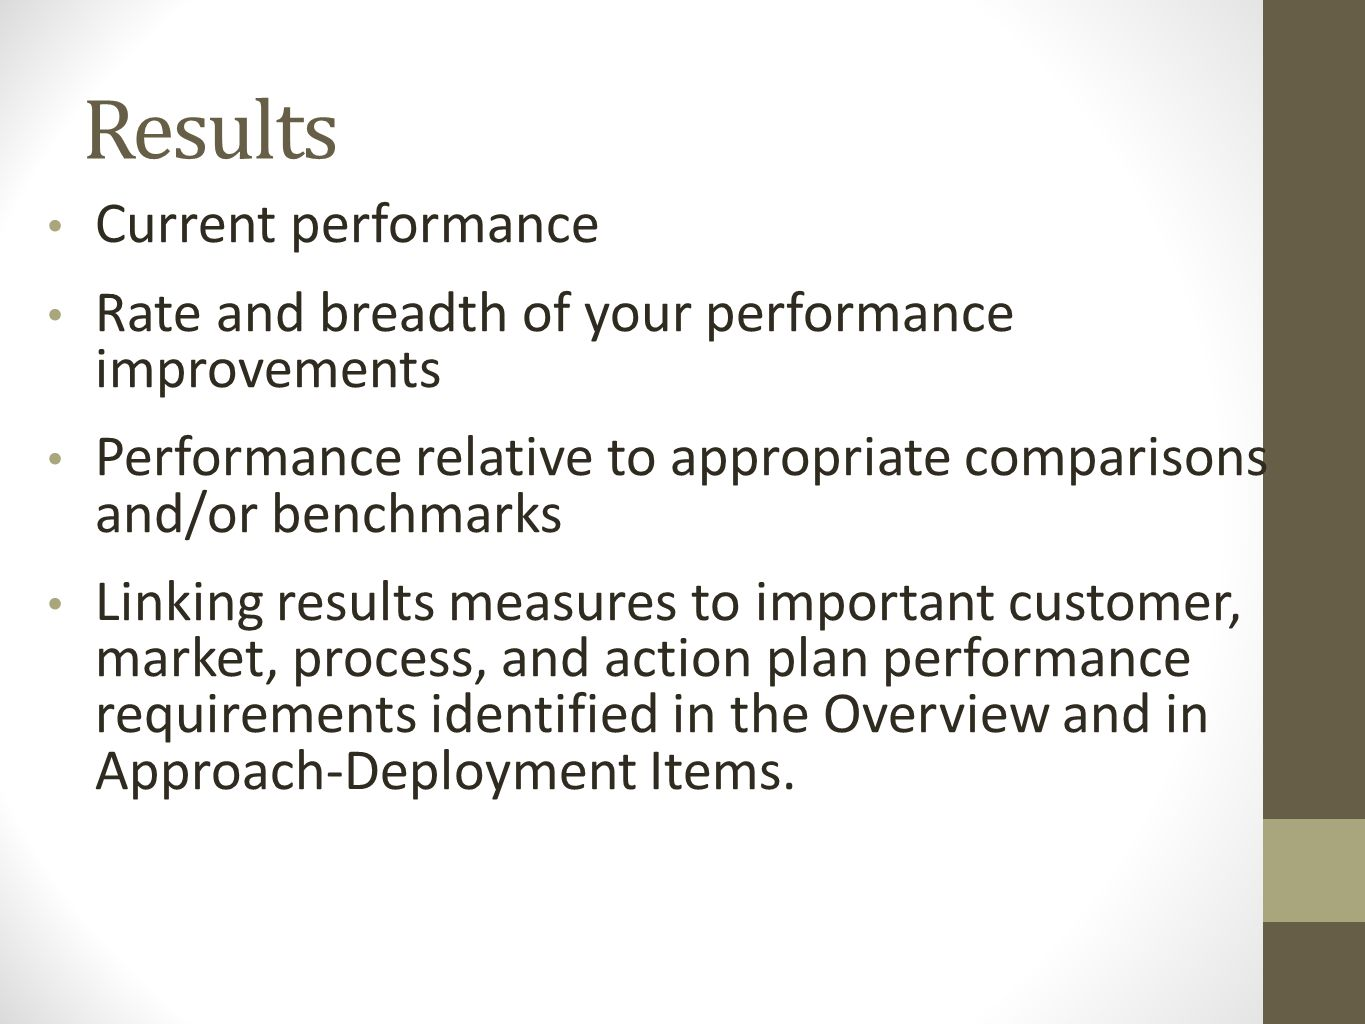 Results Current performance Rate and breadth of your performance improvements Performance relative to appropriate comparisons and/or benchmarks Linking results measures to important customer, market, process, and action plan performance requirements identified in the Overview and in Approach-Deployment Items.